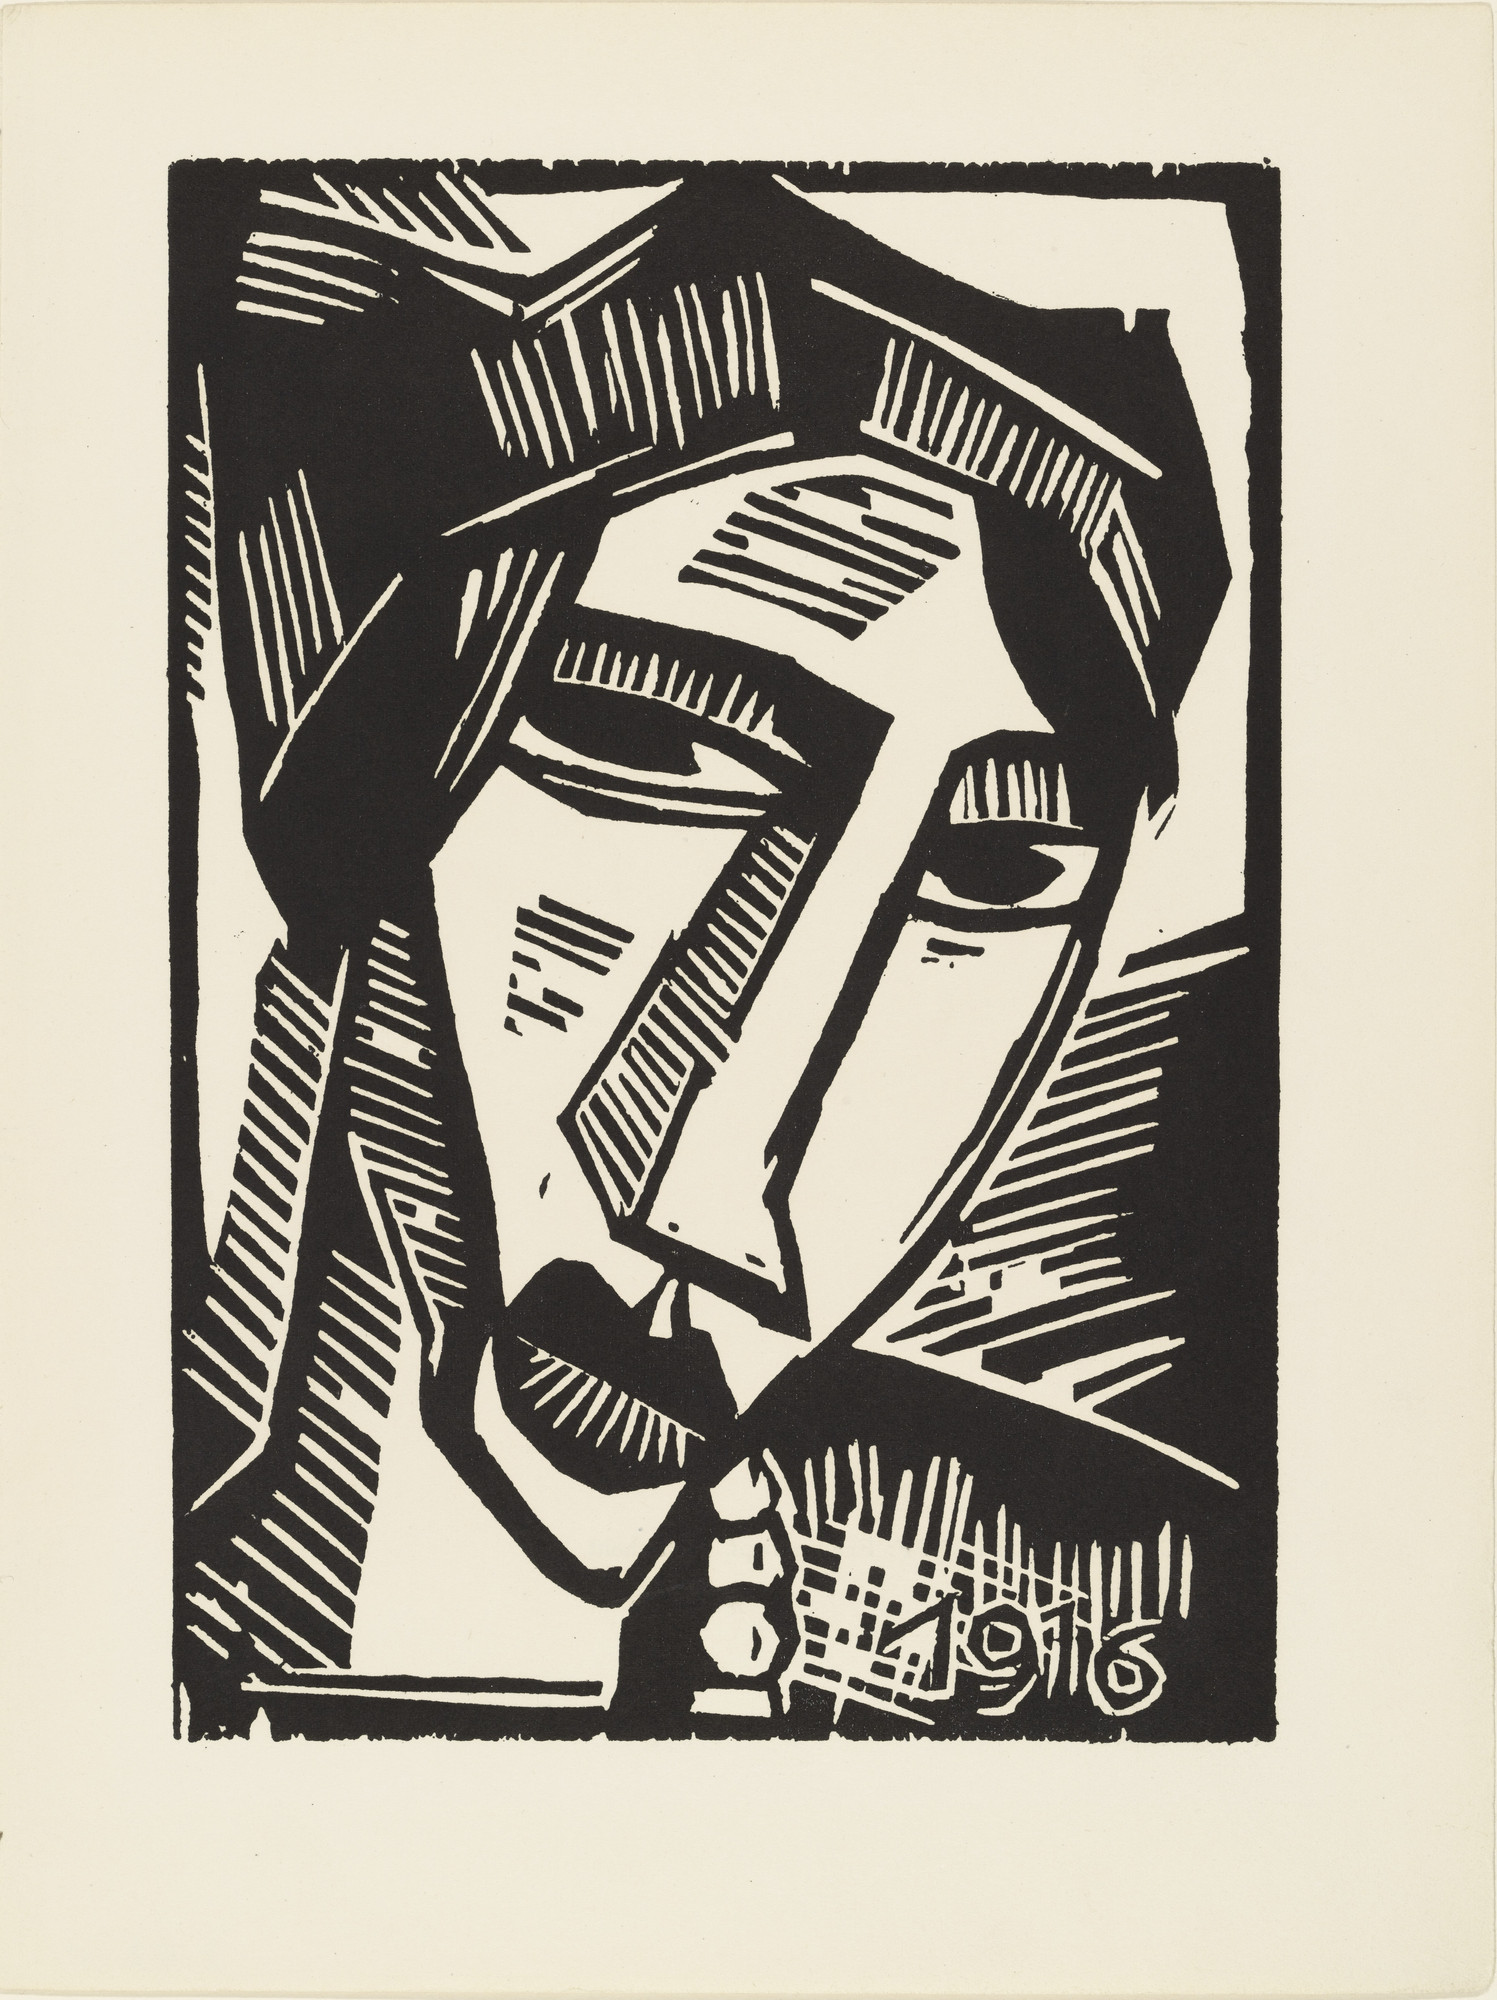 Karl Schmidt-Rottluff. Woman's Head (plate 22) from the illustrated book Deutsche Graphiker der Gegenwart (German Printmakers of Our Time). 1920 (print executed in 1916)